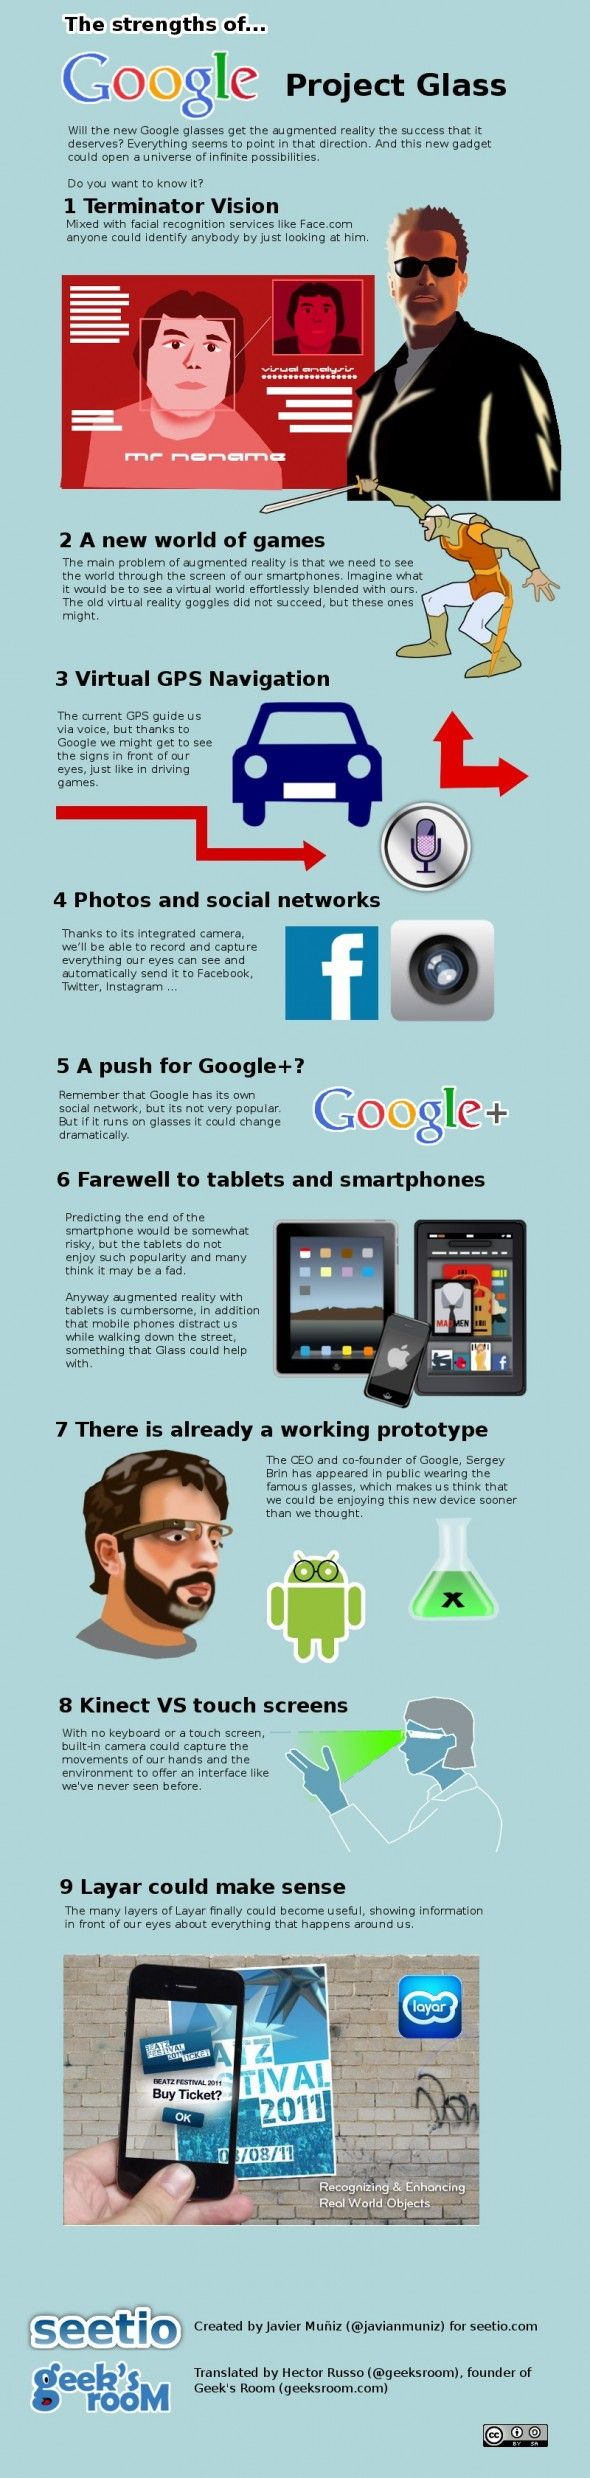 The strengths of Google Project Glass (Remember the fictional x-ray glass in movies?)